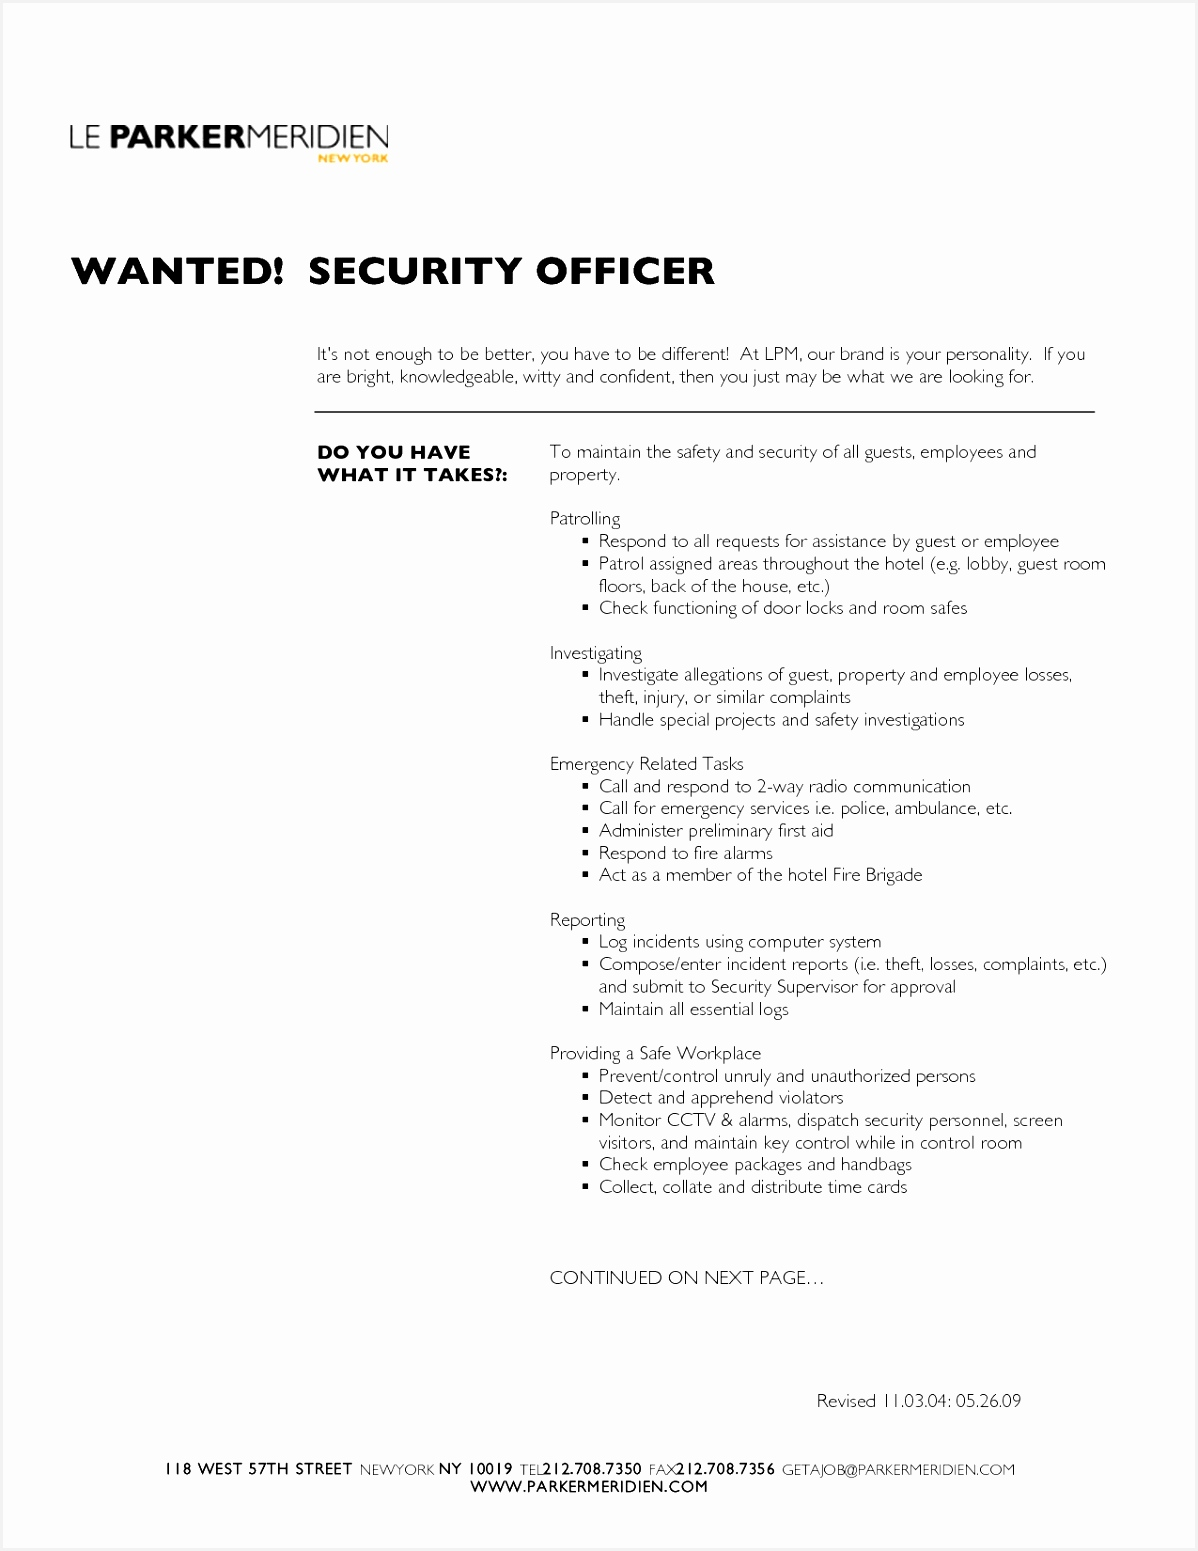 Sample Resume For Security ficer Supervisor Refrence Security Resume With No Experience Professional Entry Level15511198